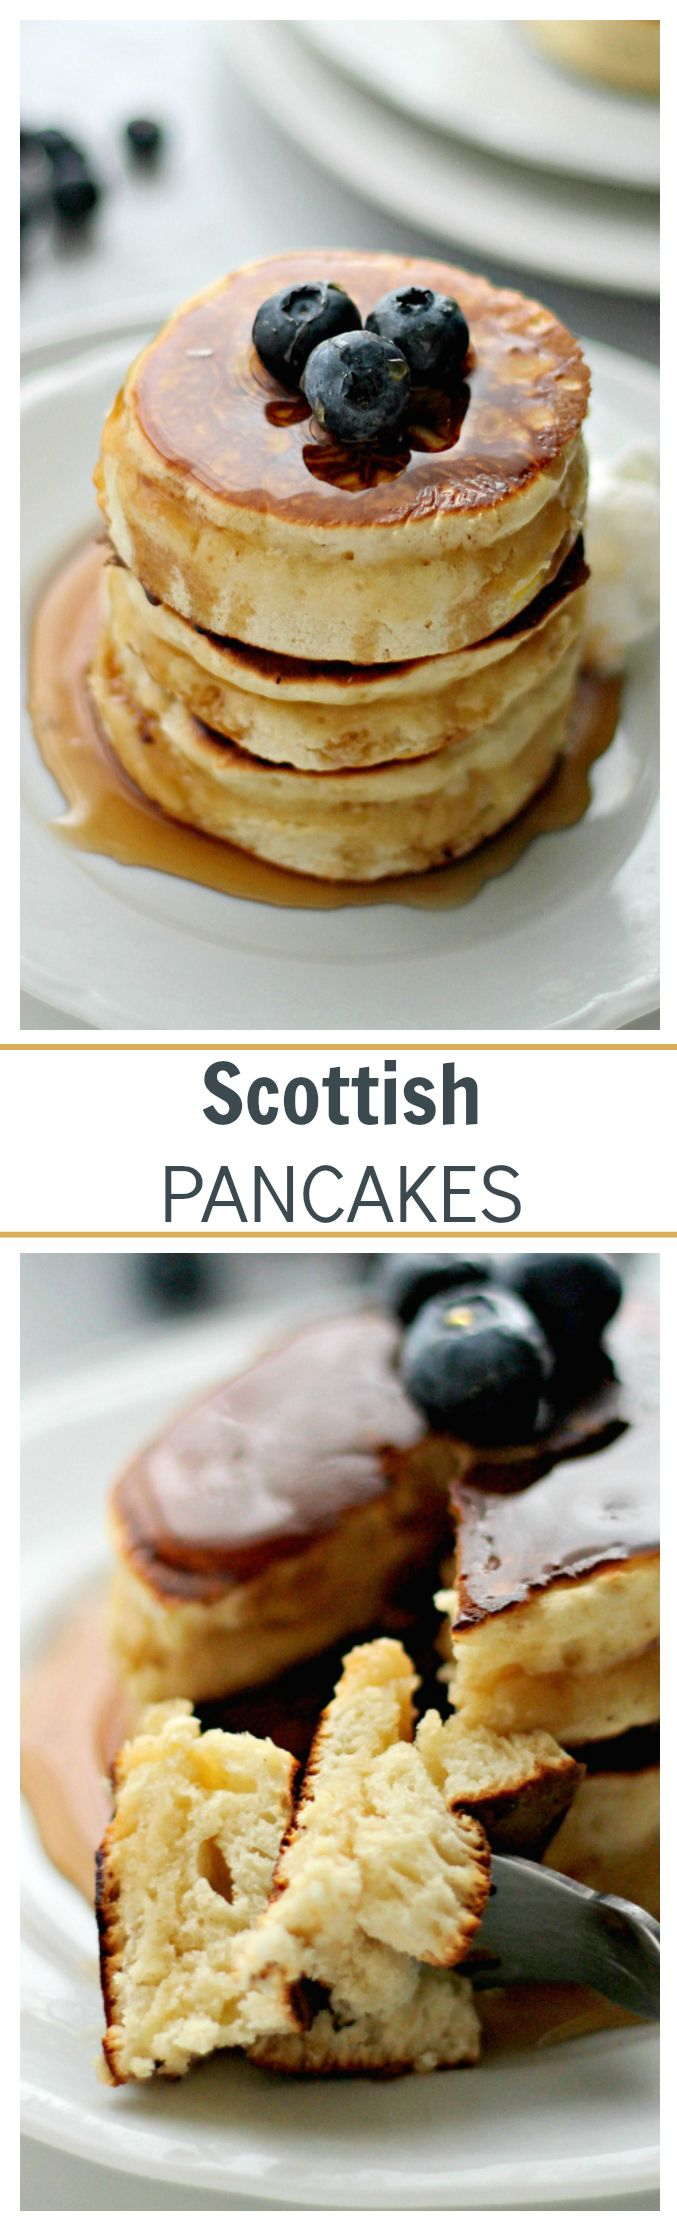 "Scottish Pancakes | www.diethood.com |"" These are the fluffiest, sweetest, most delicious pancakes I have ever made!"""